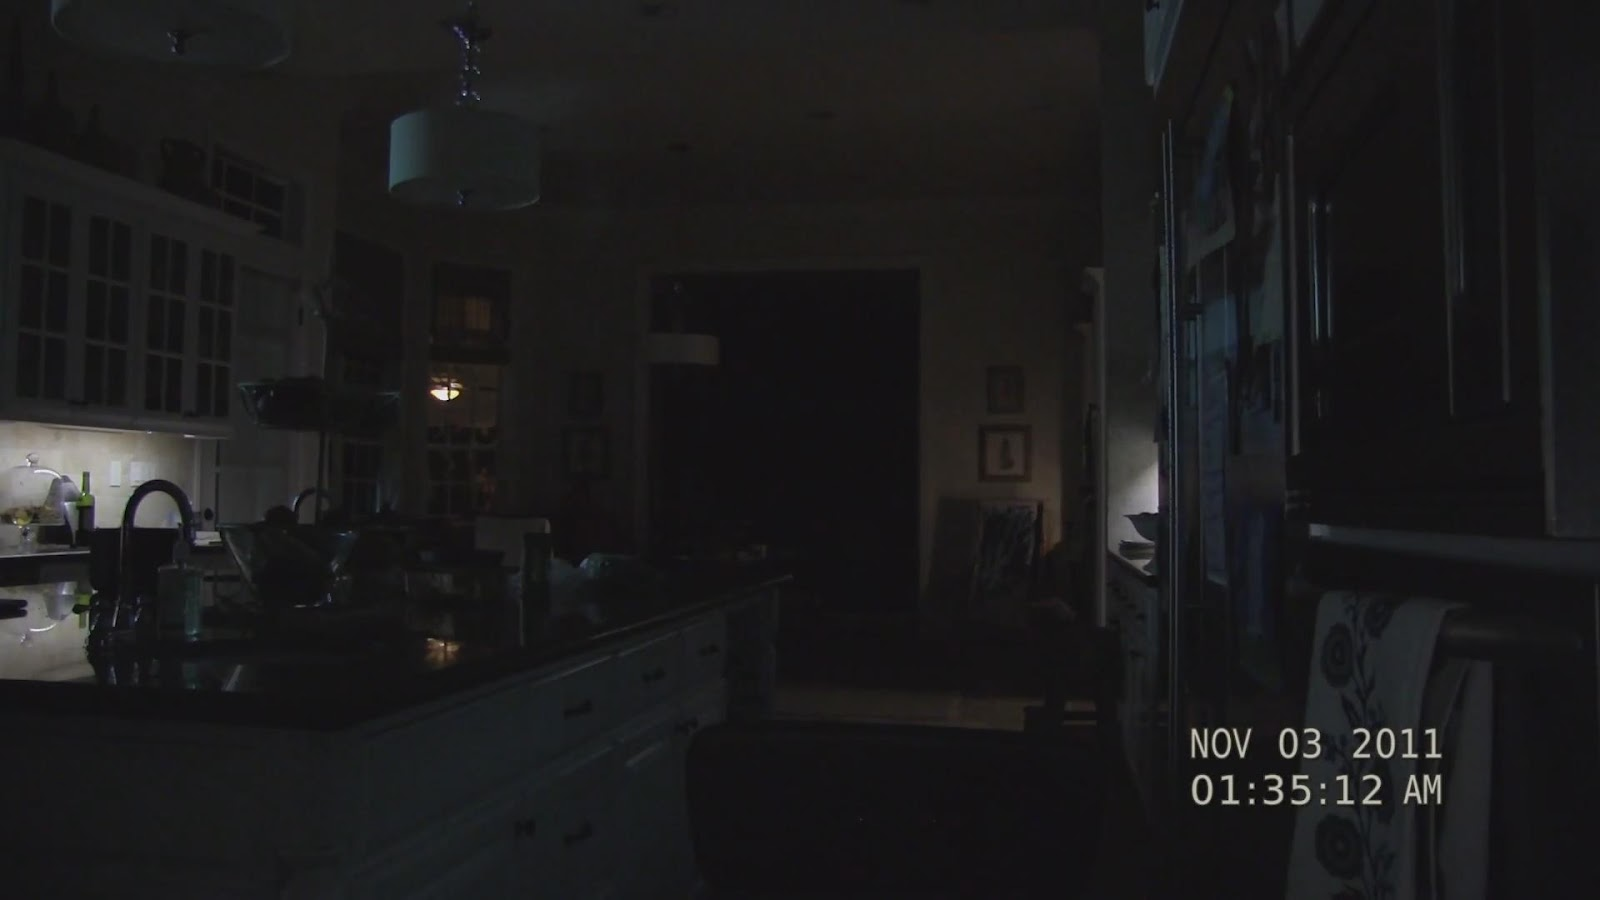 Paranormal+Activity+4+hd+wallpapers+%288%29 Paranormal Activity 4 Fragmanı İzle